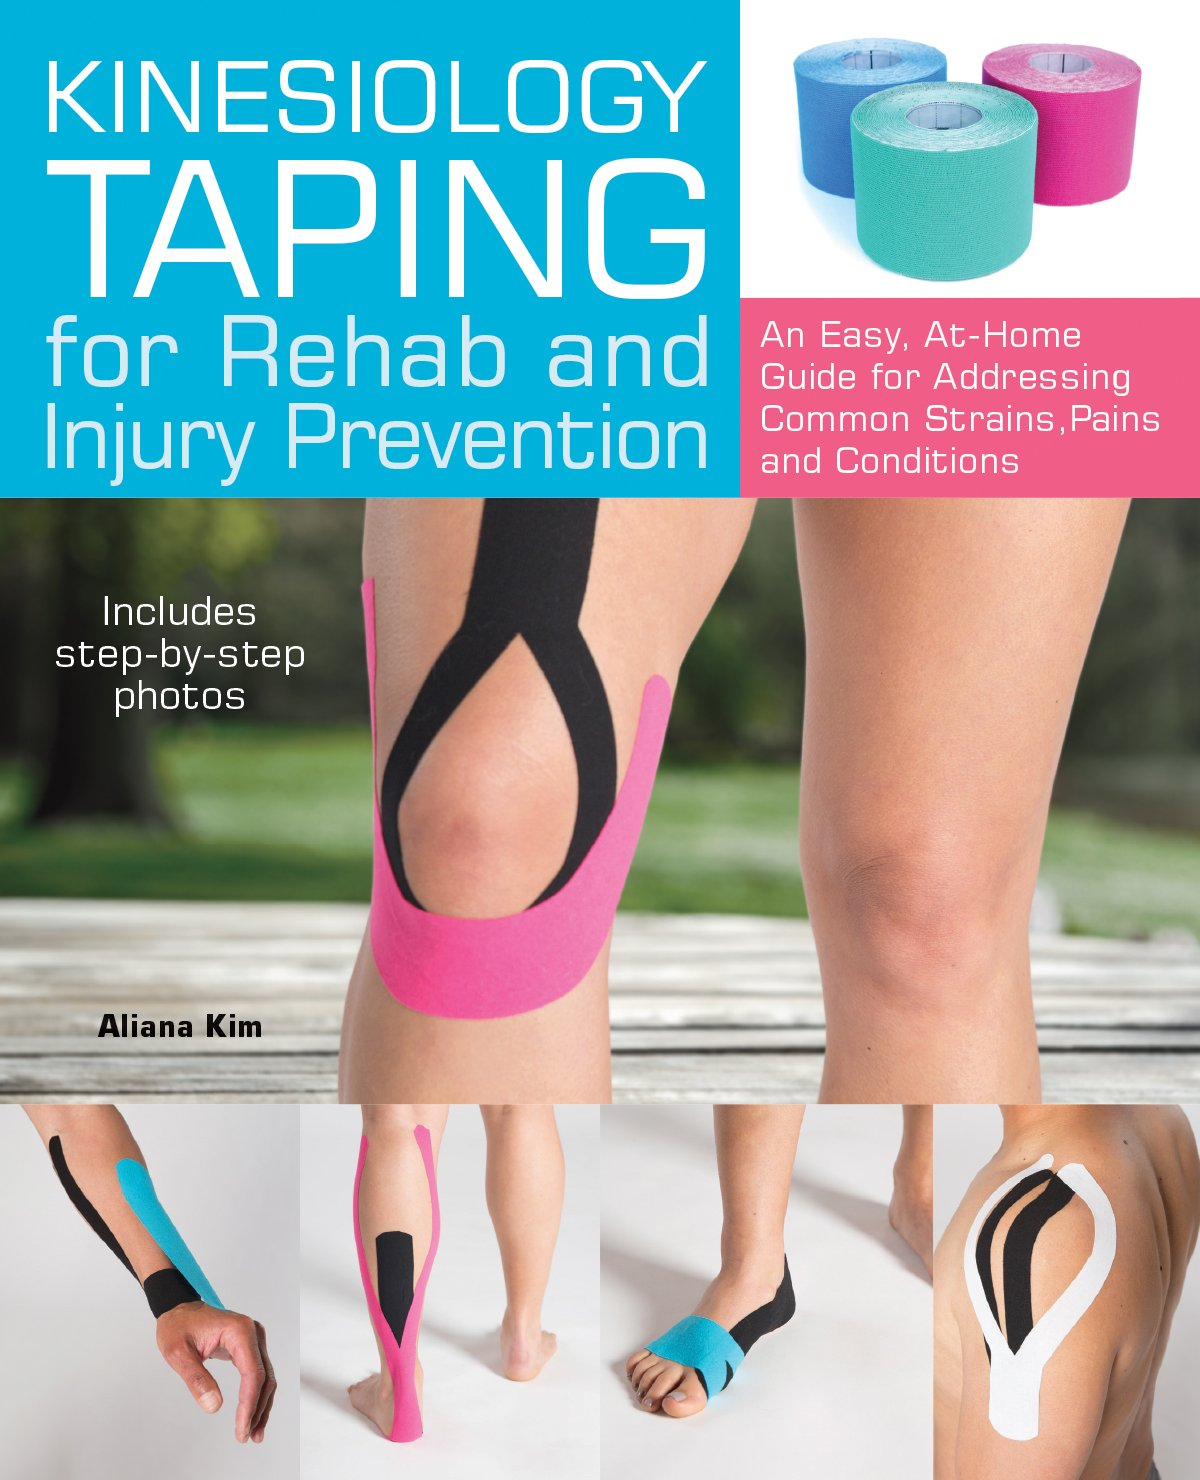 Kinesiology Taping Rehab Injury Prevention product image